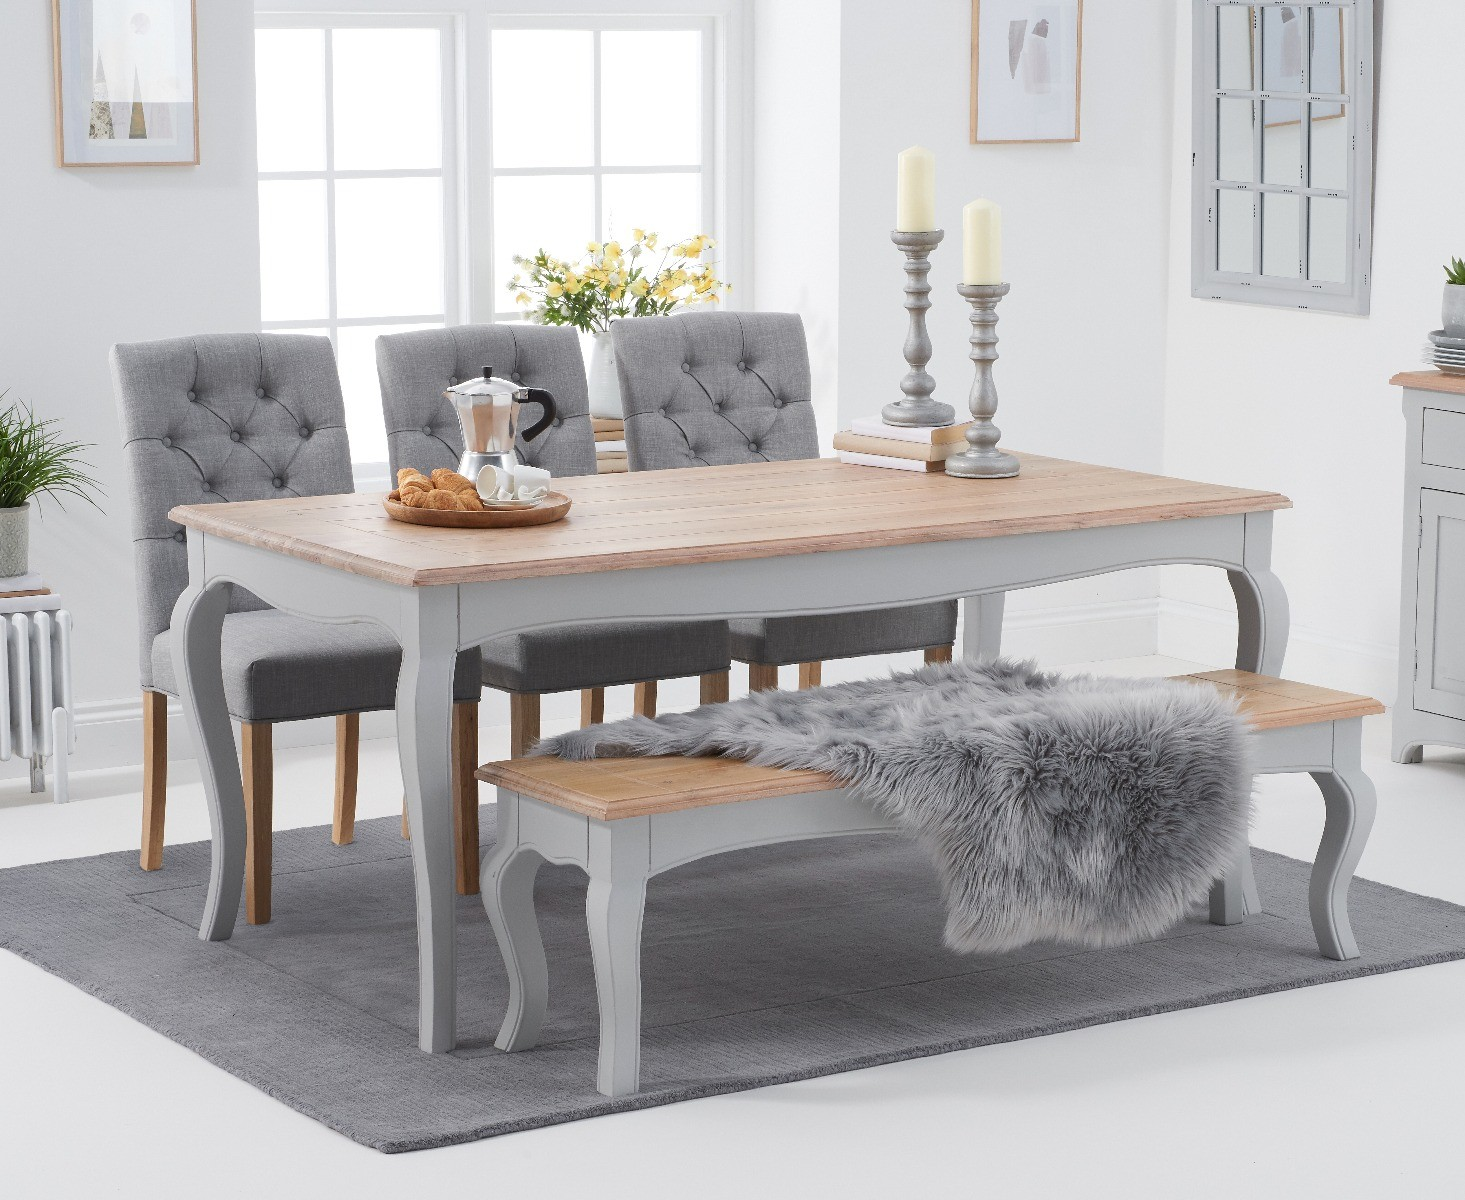 Parisian 175cm Grey Shabby Chic Dining Table With Claudia Fabric Chairs And Benches